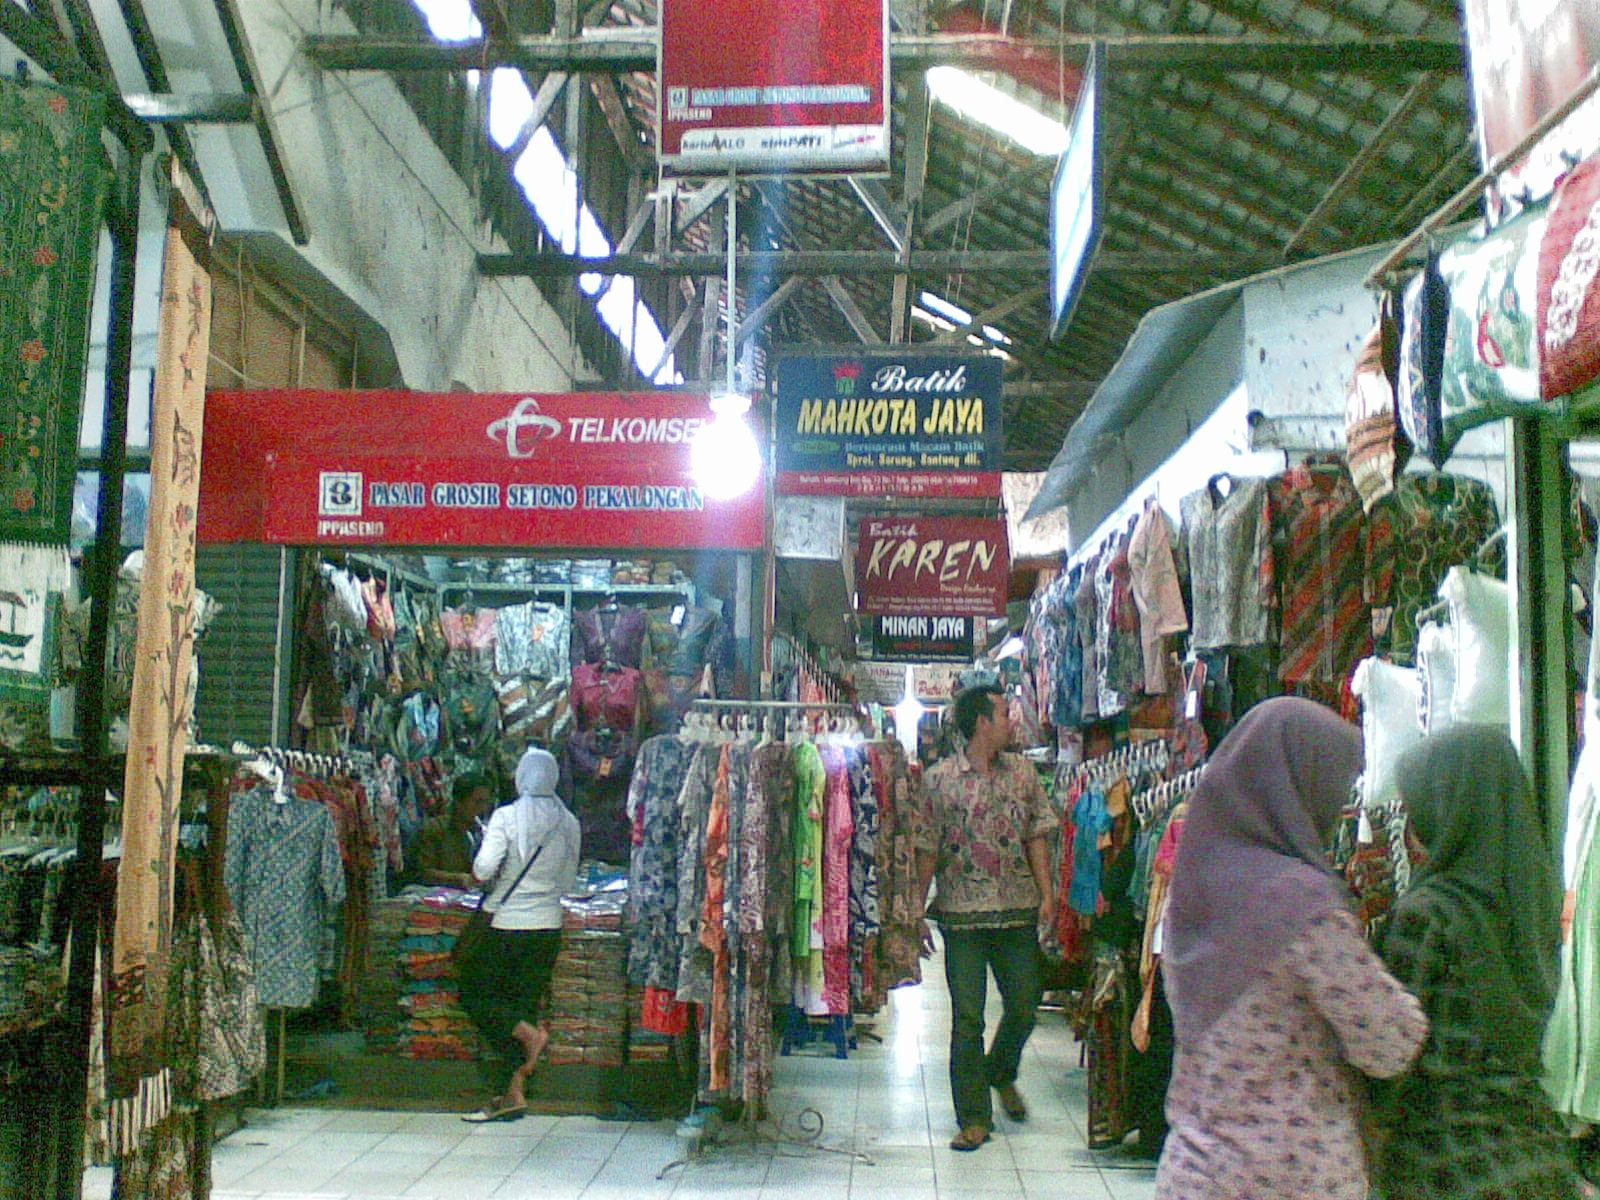 pasar grosir setono dan ibc international batik center in